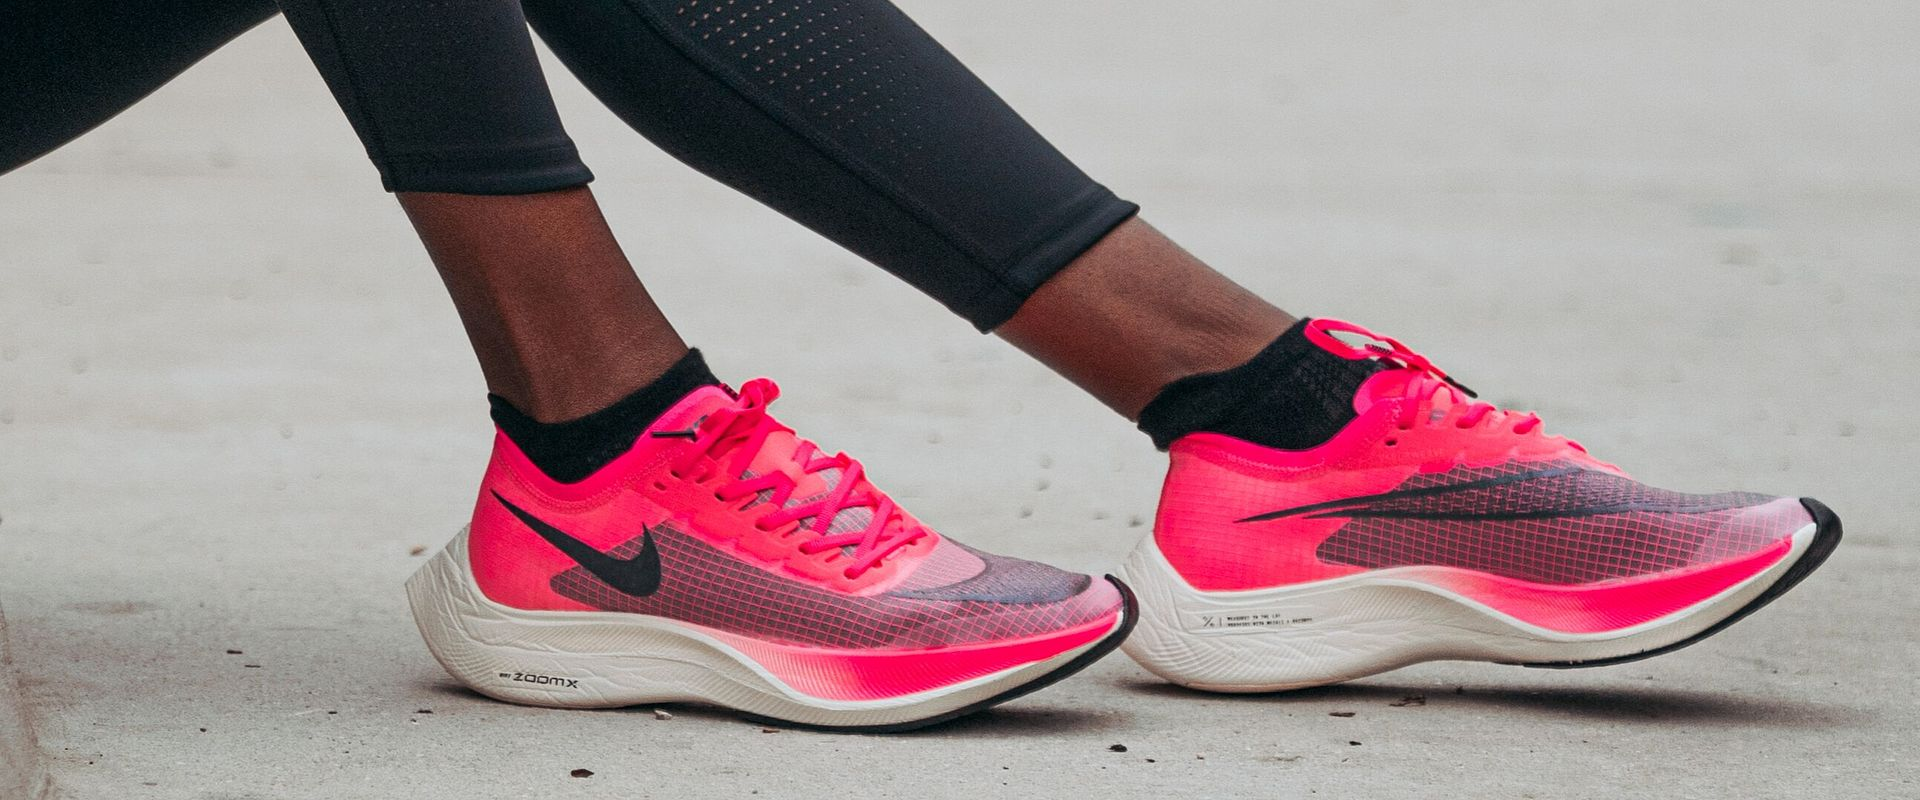 Shoe Review Nike ZoomX Vaporfly NEXT%